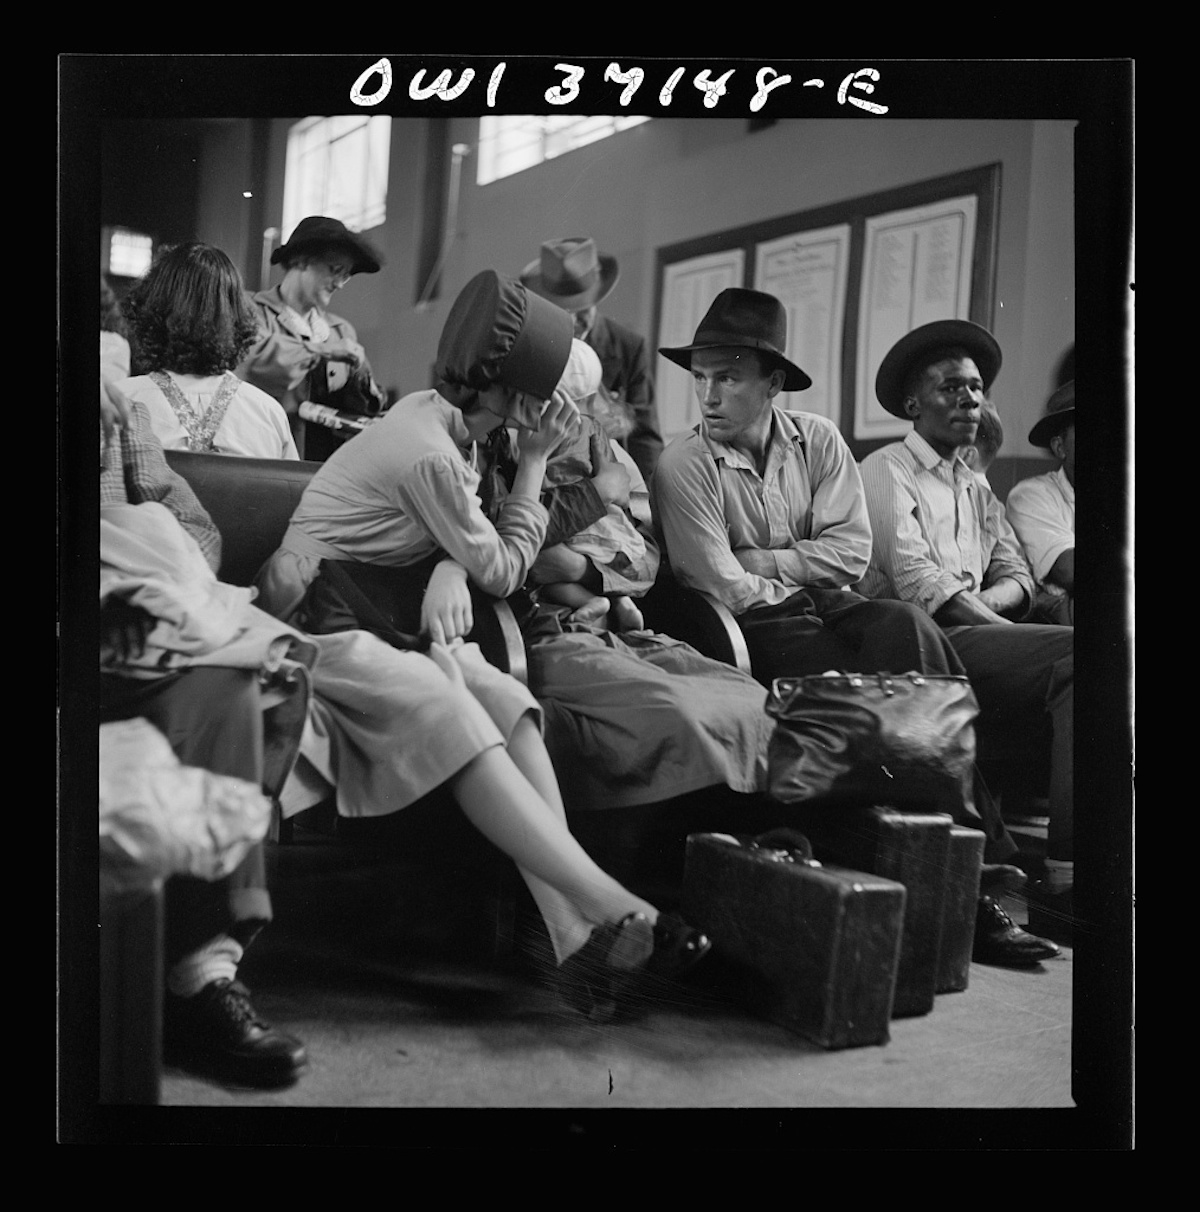 Pittsburgh, Pennsylvania. Passengers in the waiting room of the Greyhound bus station